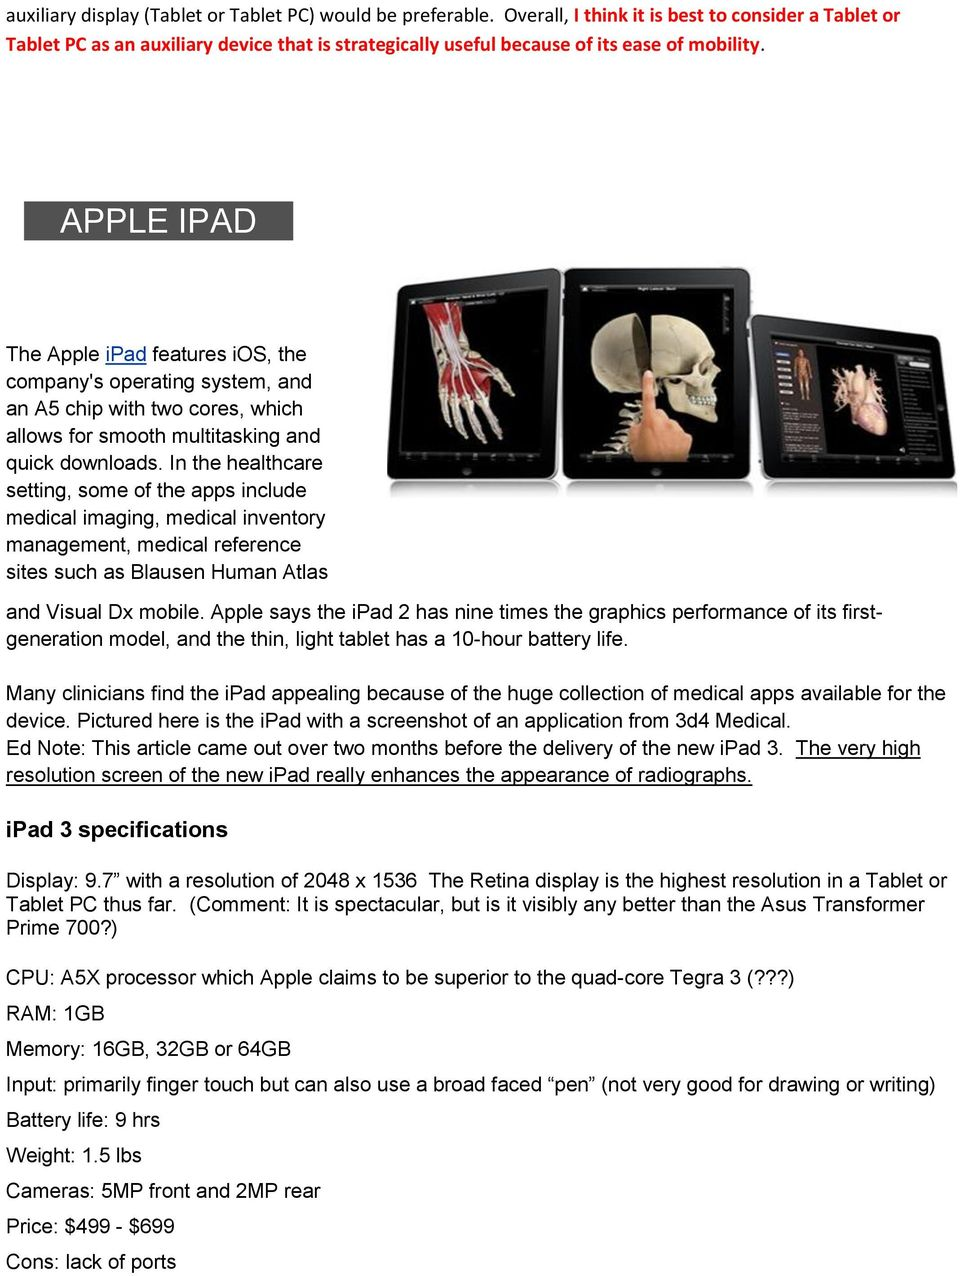 APPLE IPAD The Apple ipad features ios, the company's operating system, and an A5 chip with two cores, which allows for smooth multitasking and quick downloads.